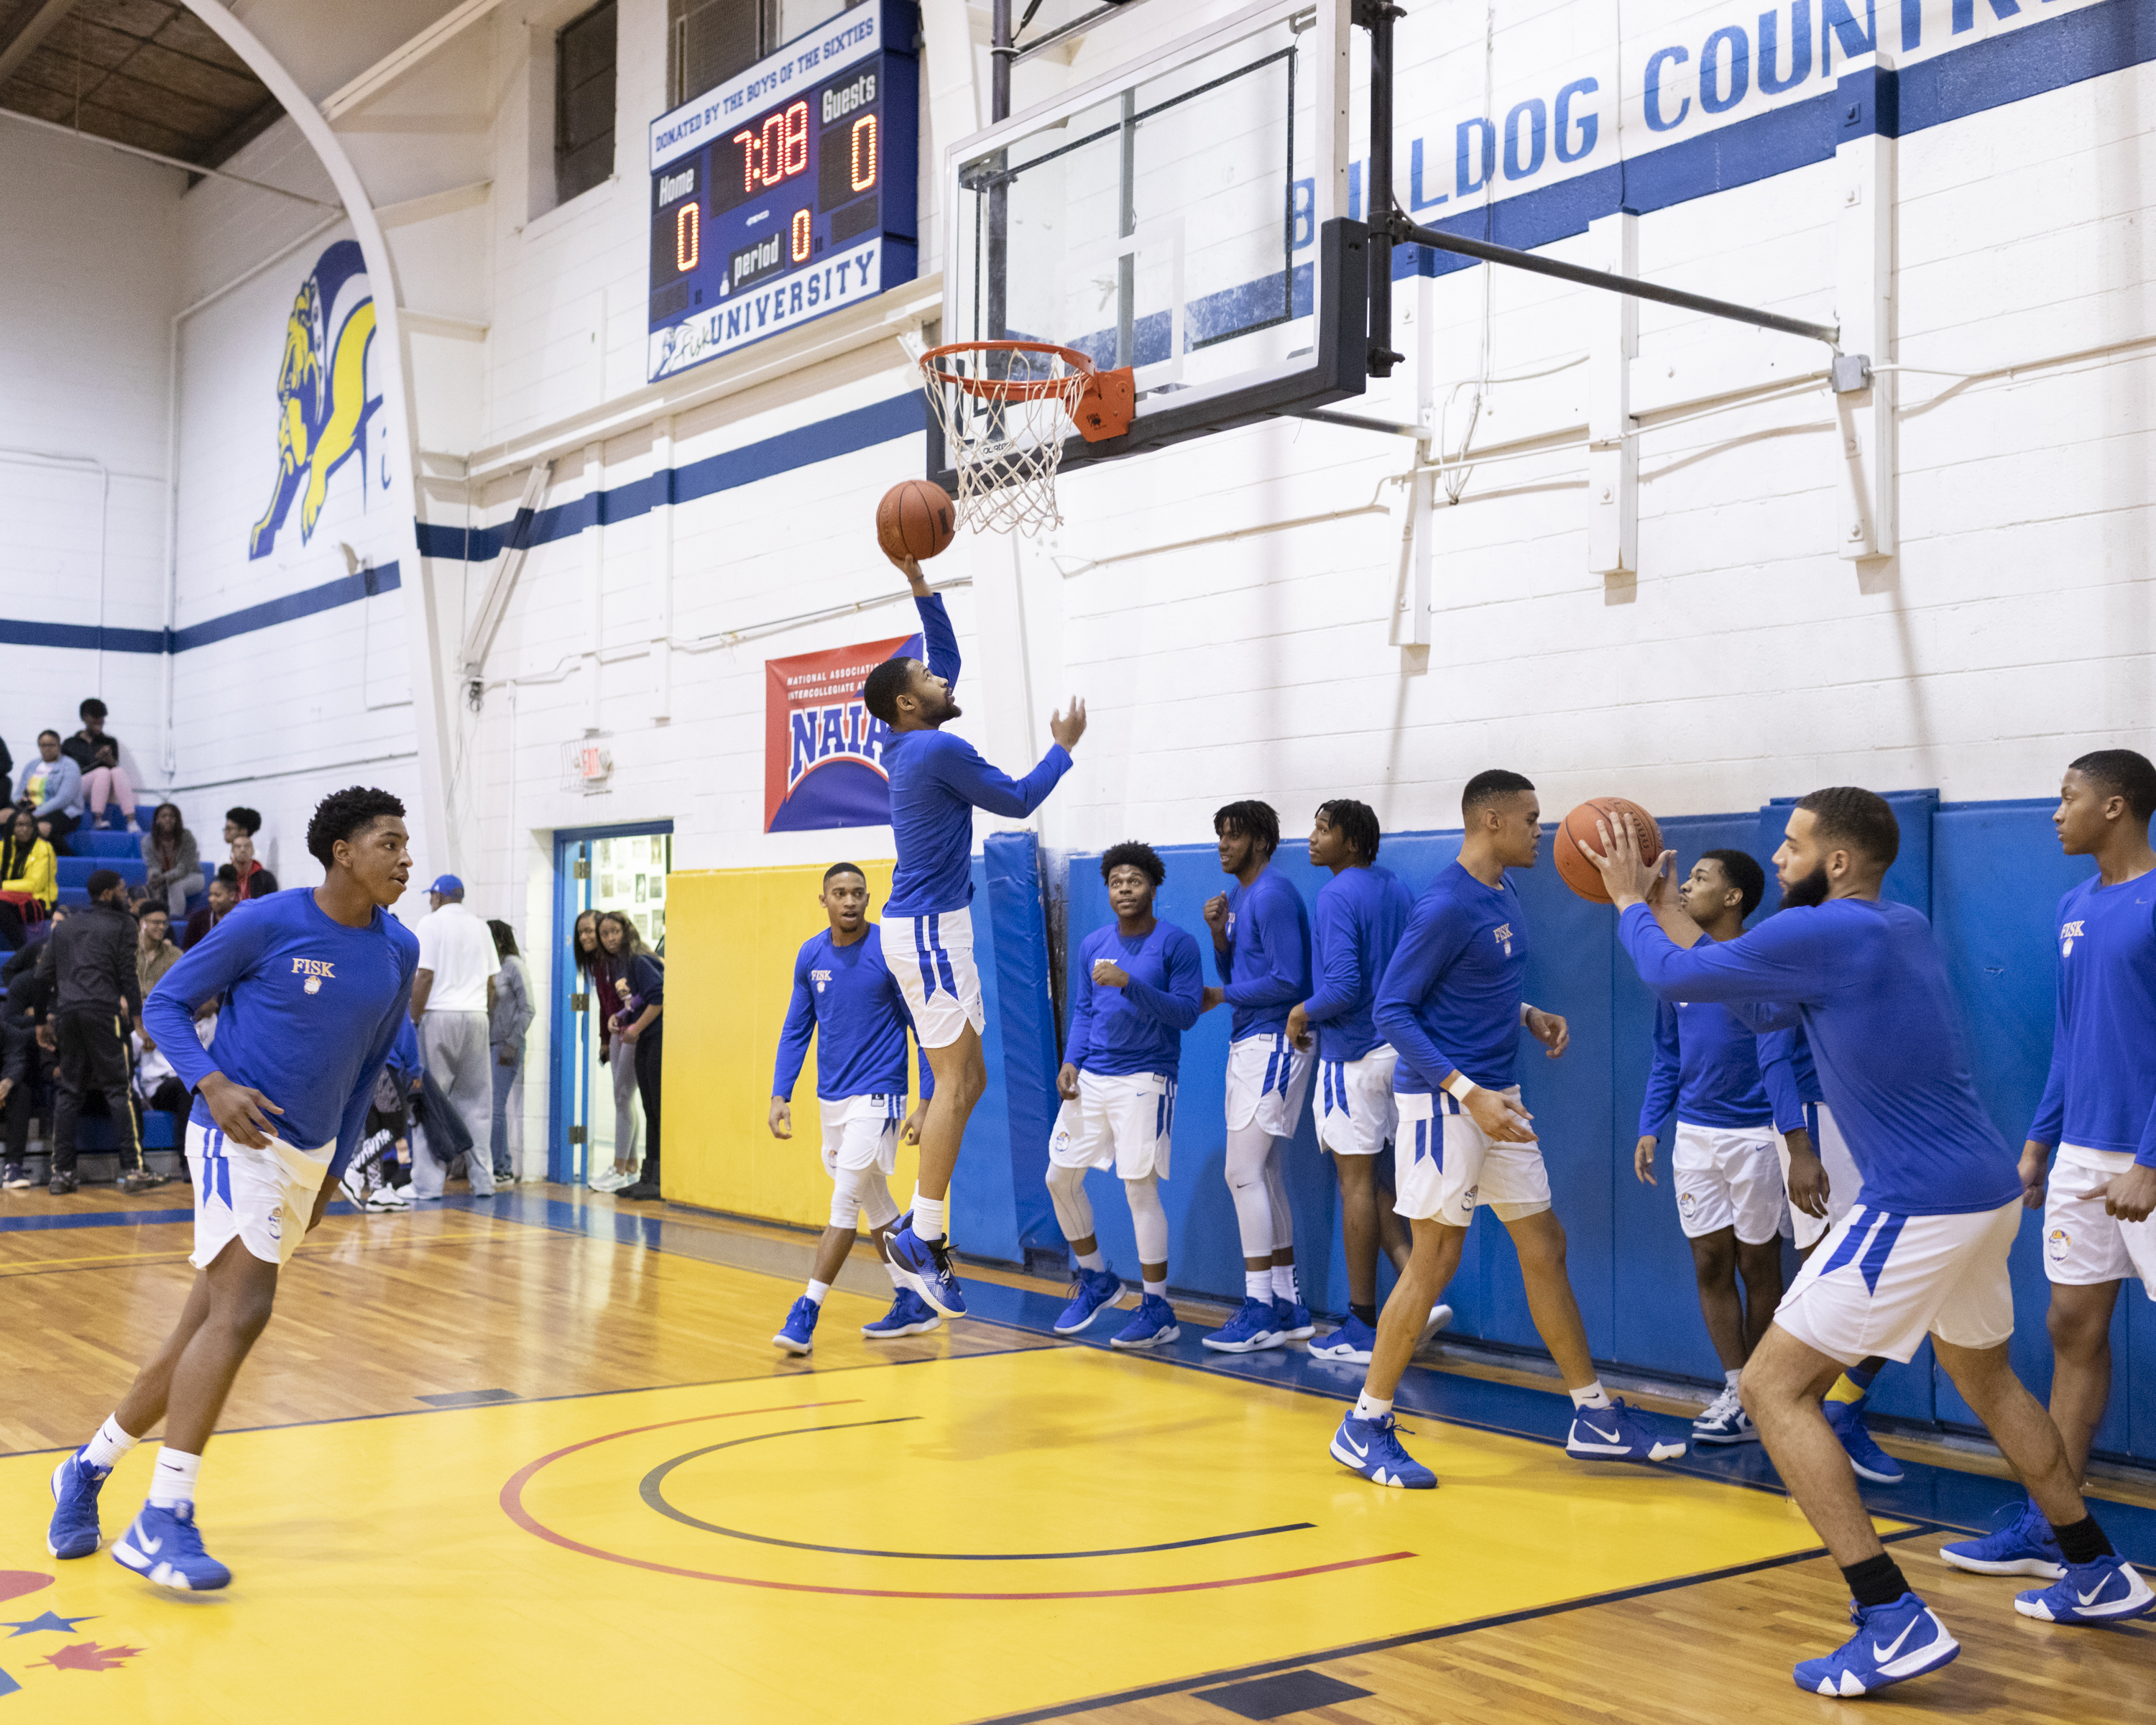 2e32e970d ... New Jersey Nets were taking Anderson No. 2. The Fisk University  basketball team does pregame warm-up drills.